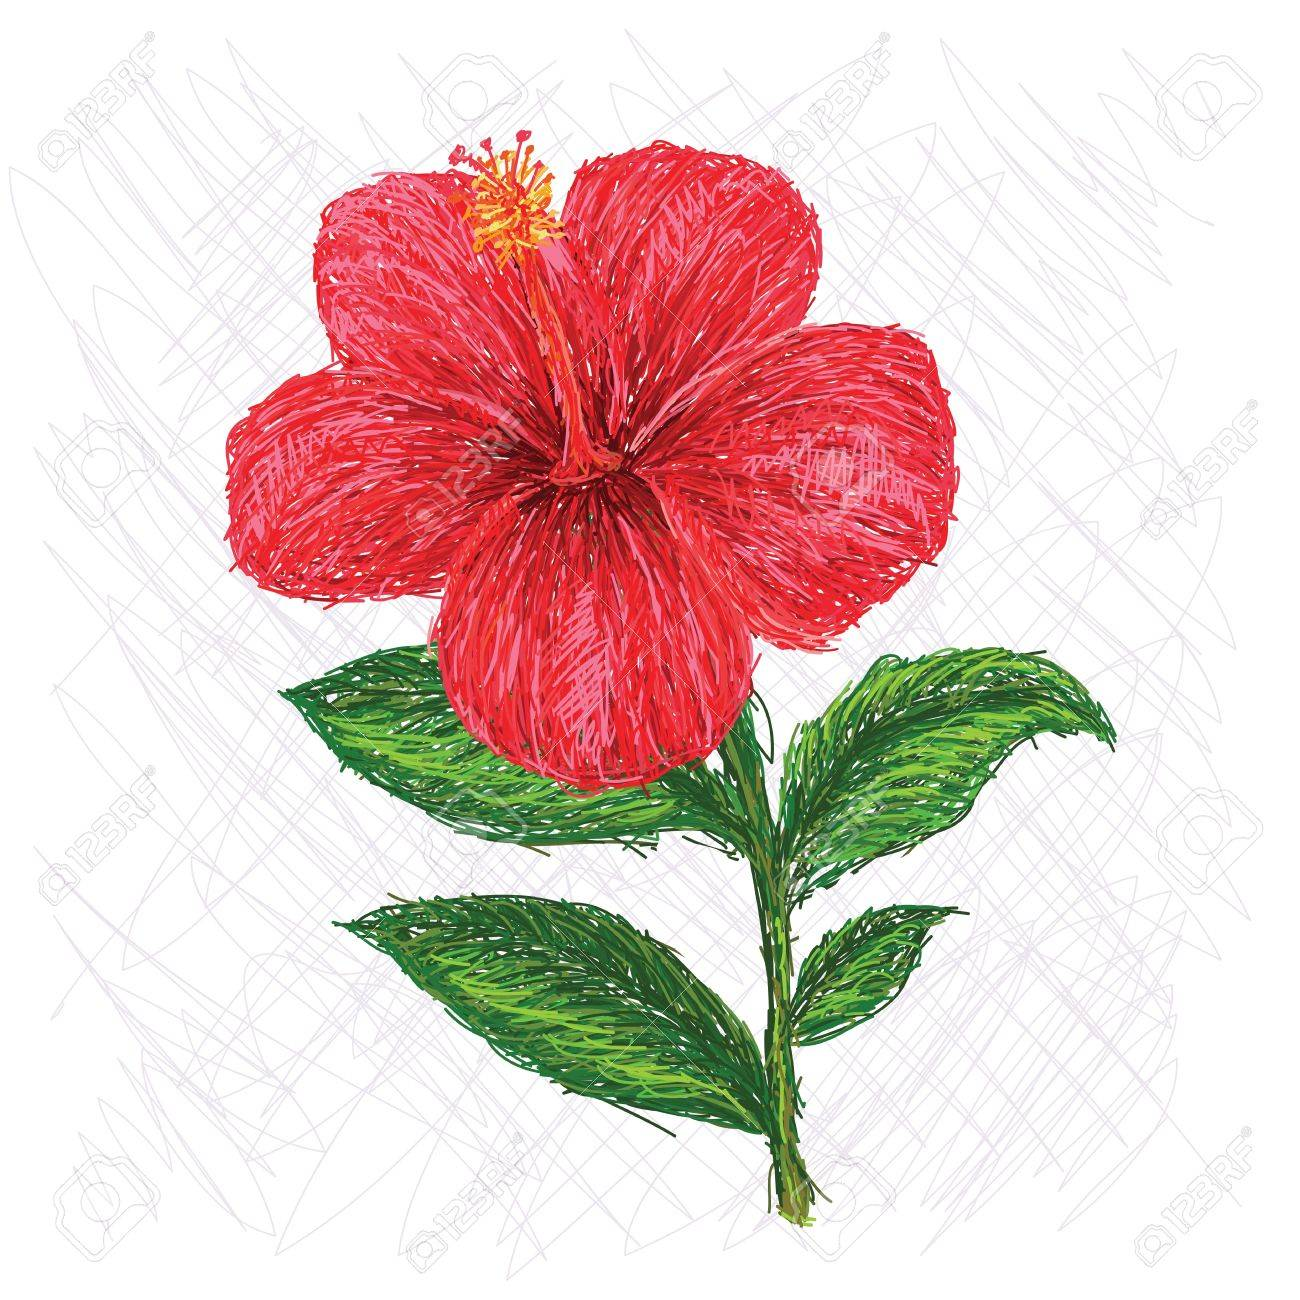 Unique style illustration of hibiscus flower scientific name unique style illustration of hibiscus flower scientific name hibiscus rosa sinensis stock vector 22026968 izmirmasajfo Image collections